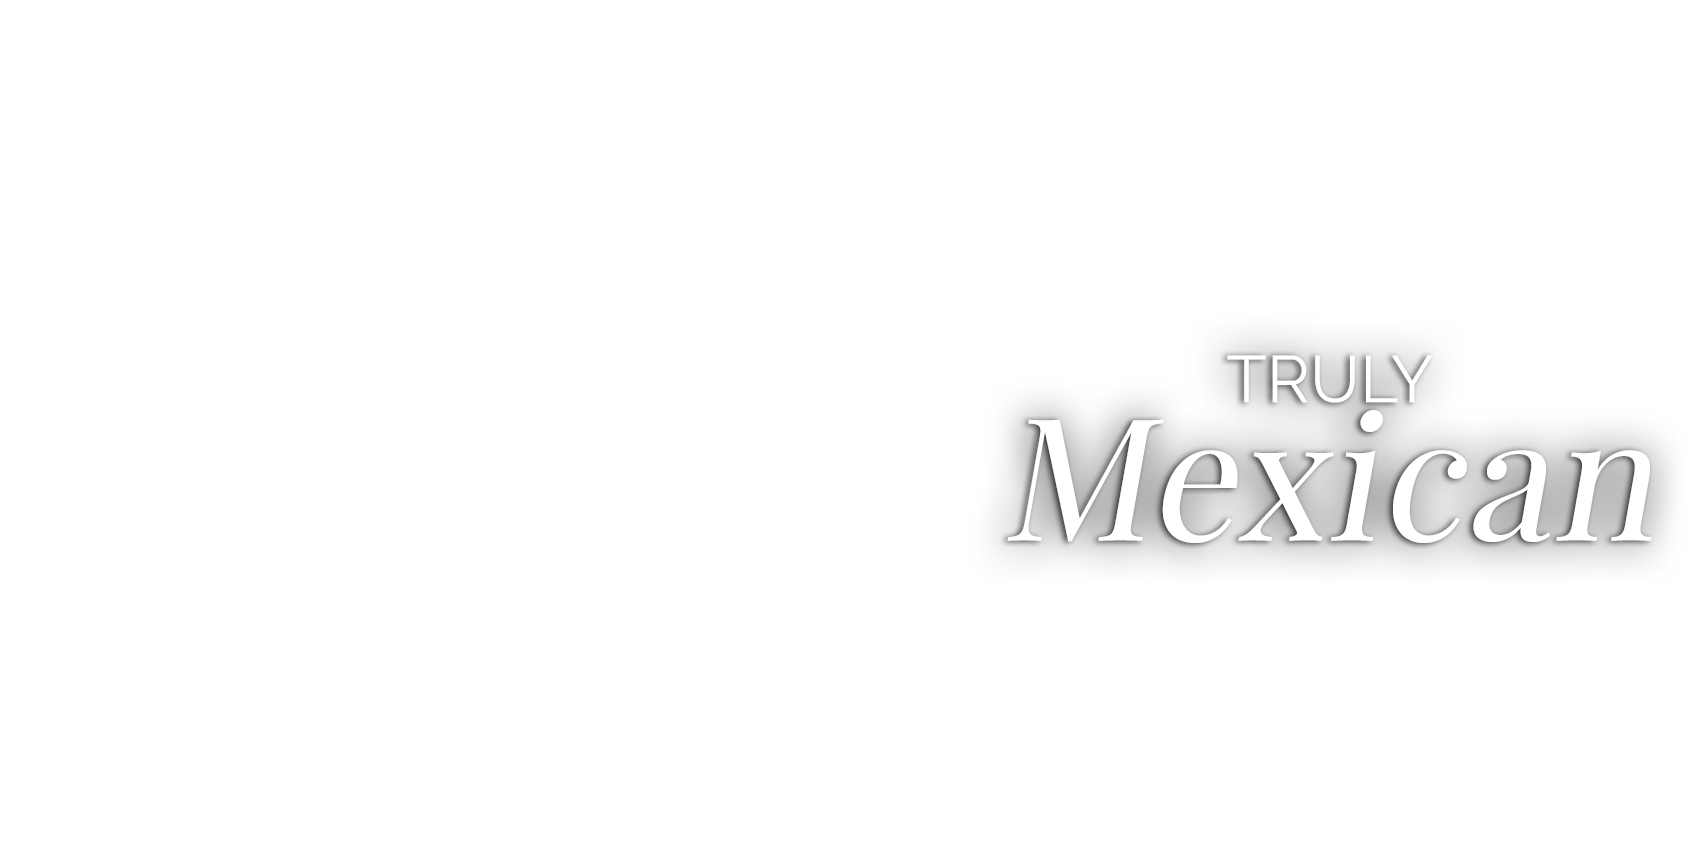 truly-mexican